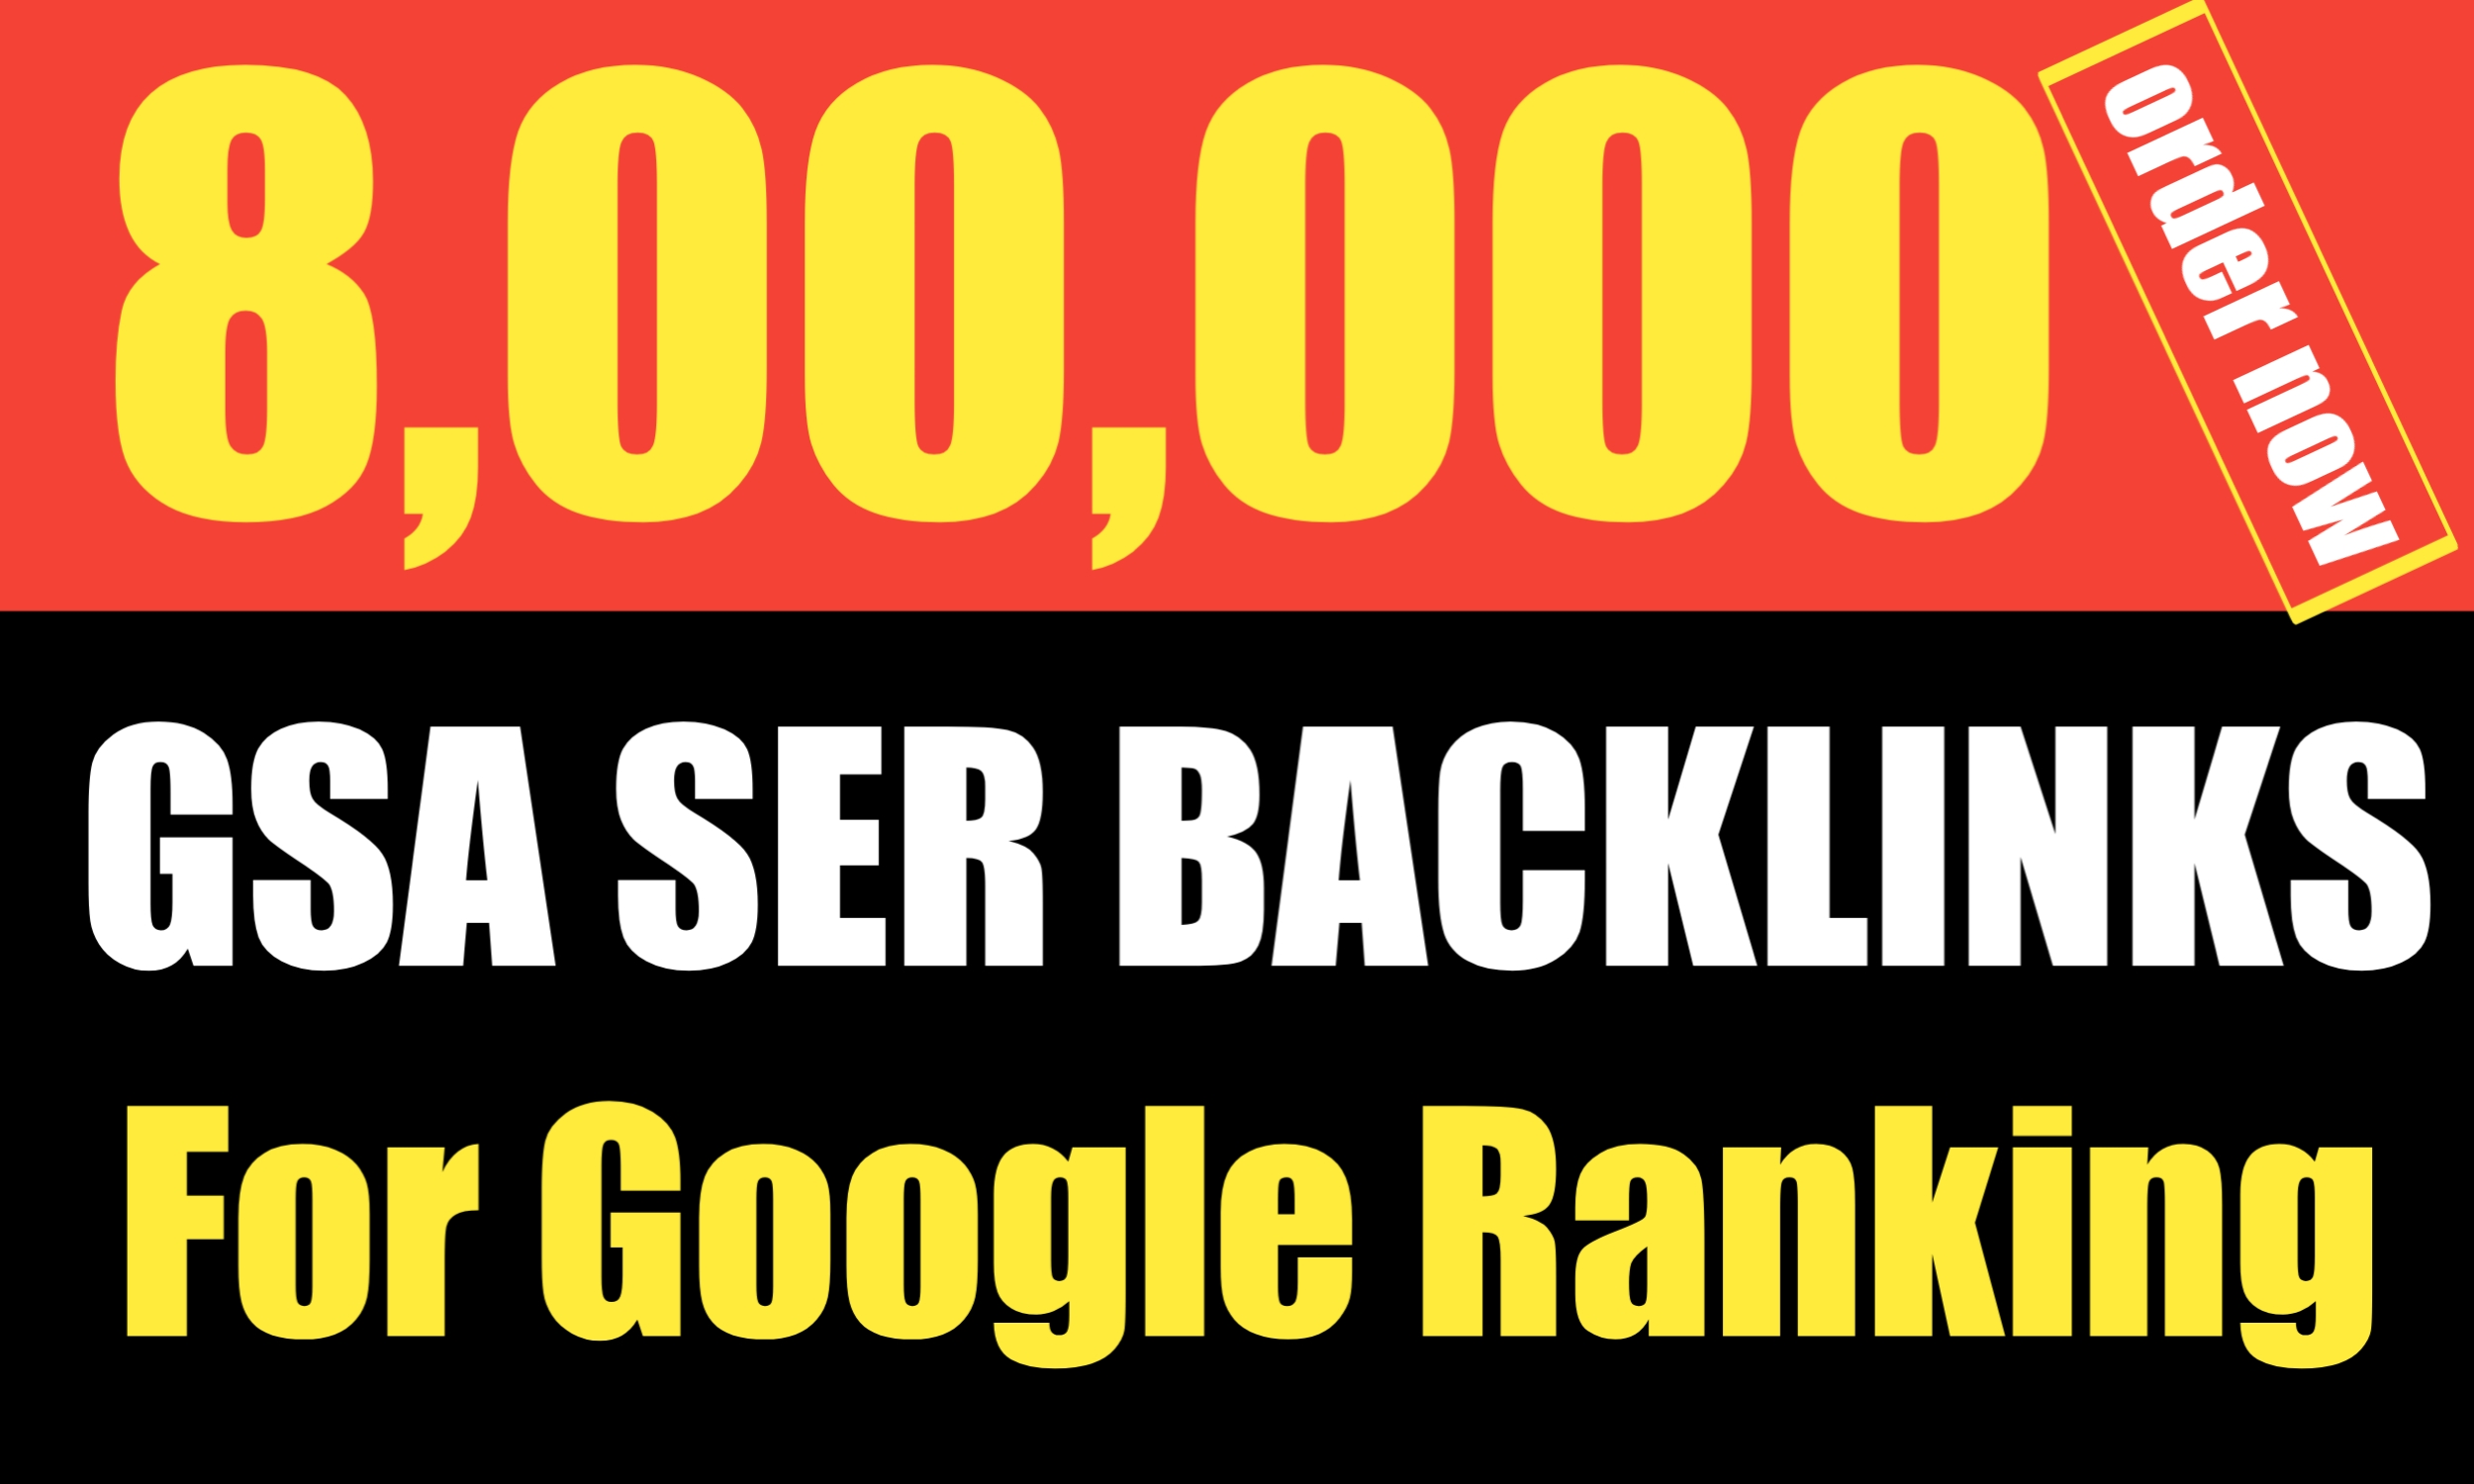 Create 800k High Quality GSA SER Backlinks and Rank your website on Google